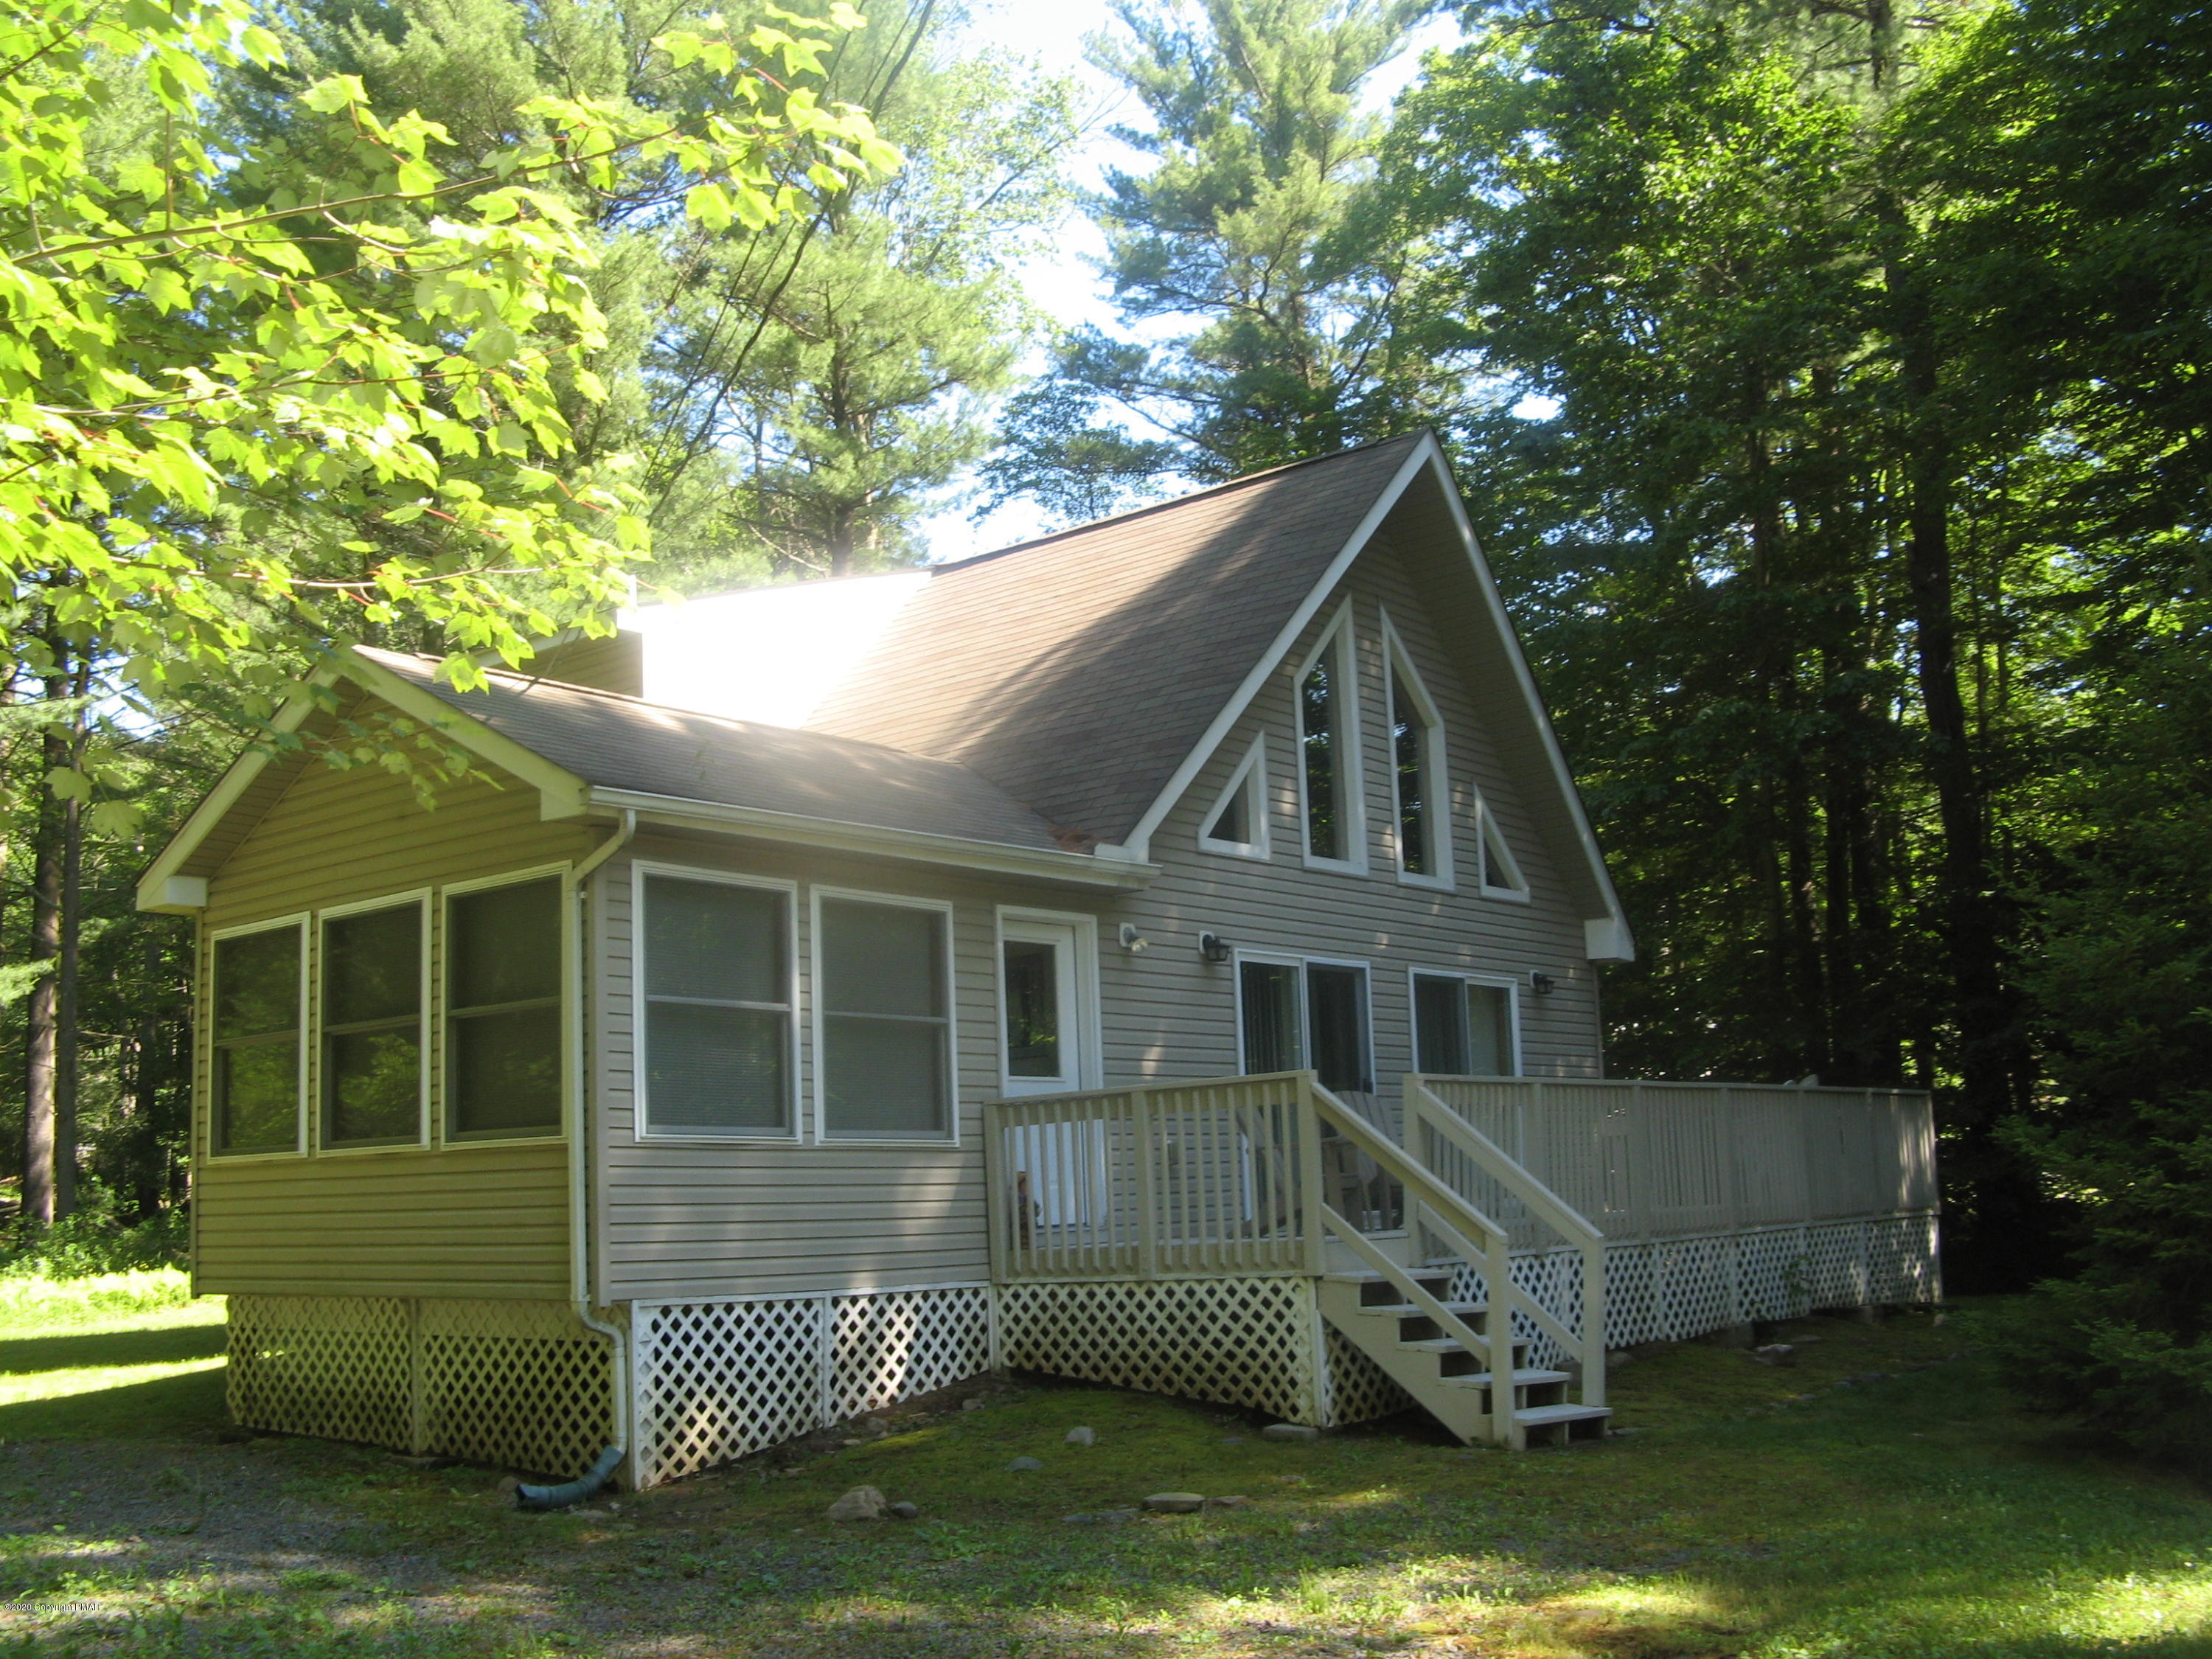 453 King Arthur Rd, Pocono Lake, PA 18347